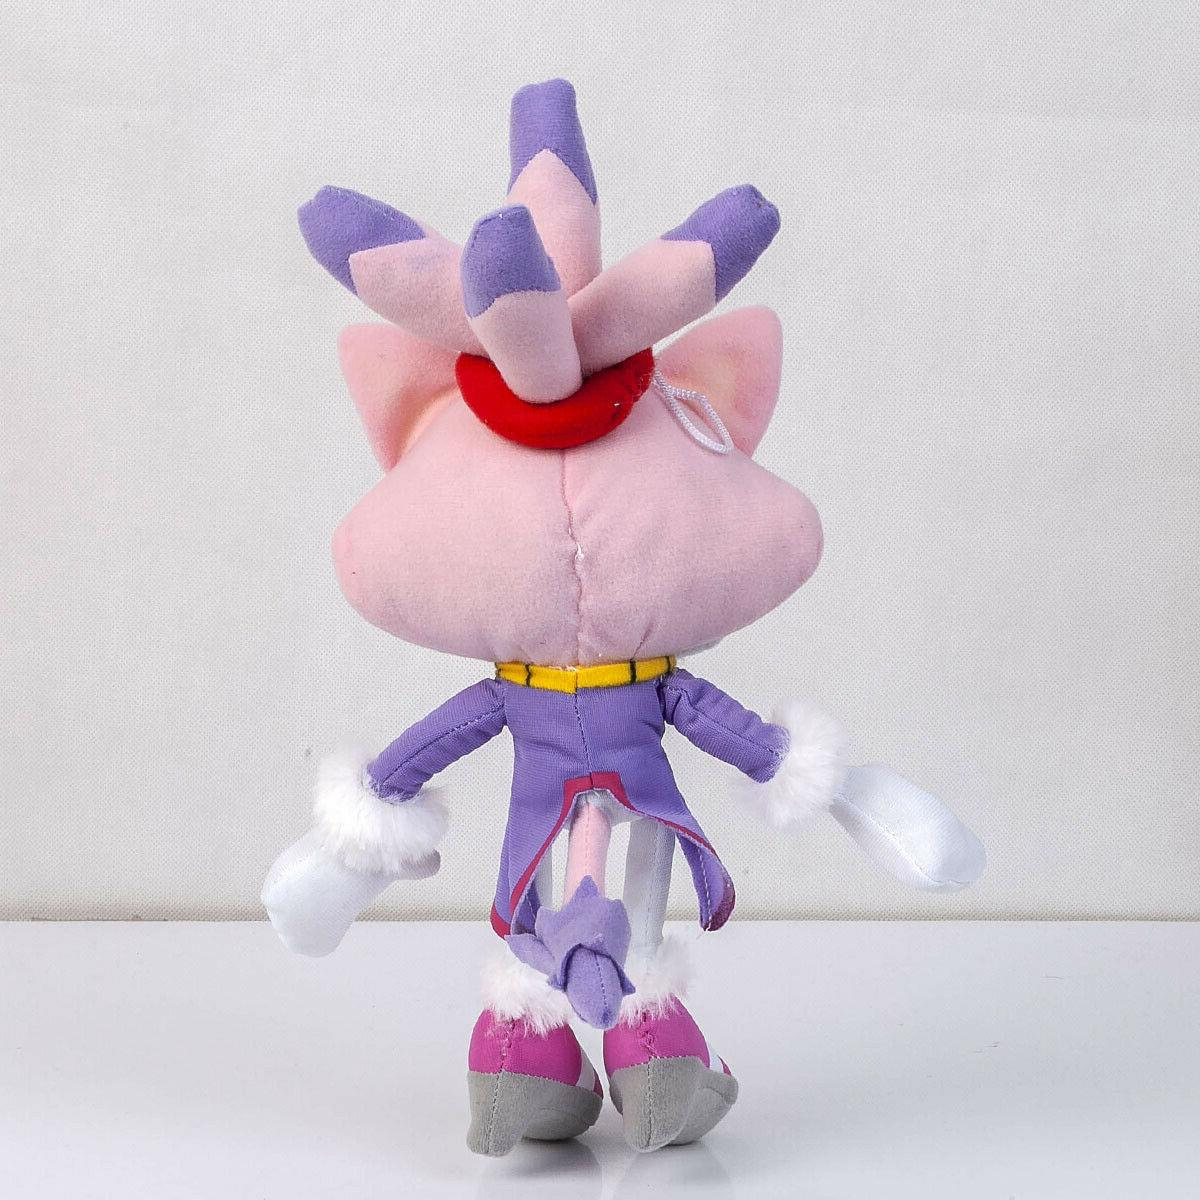 Sonic The Hedgehog Blaze the Cat Plush Doll Stuffed Toy 13 Inch